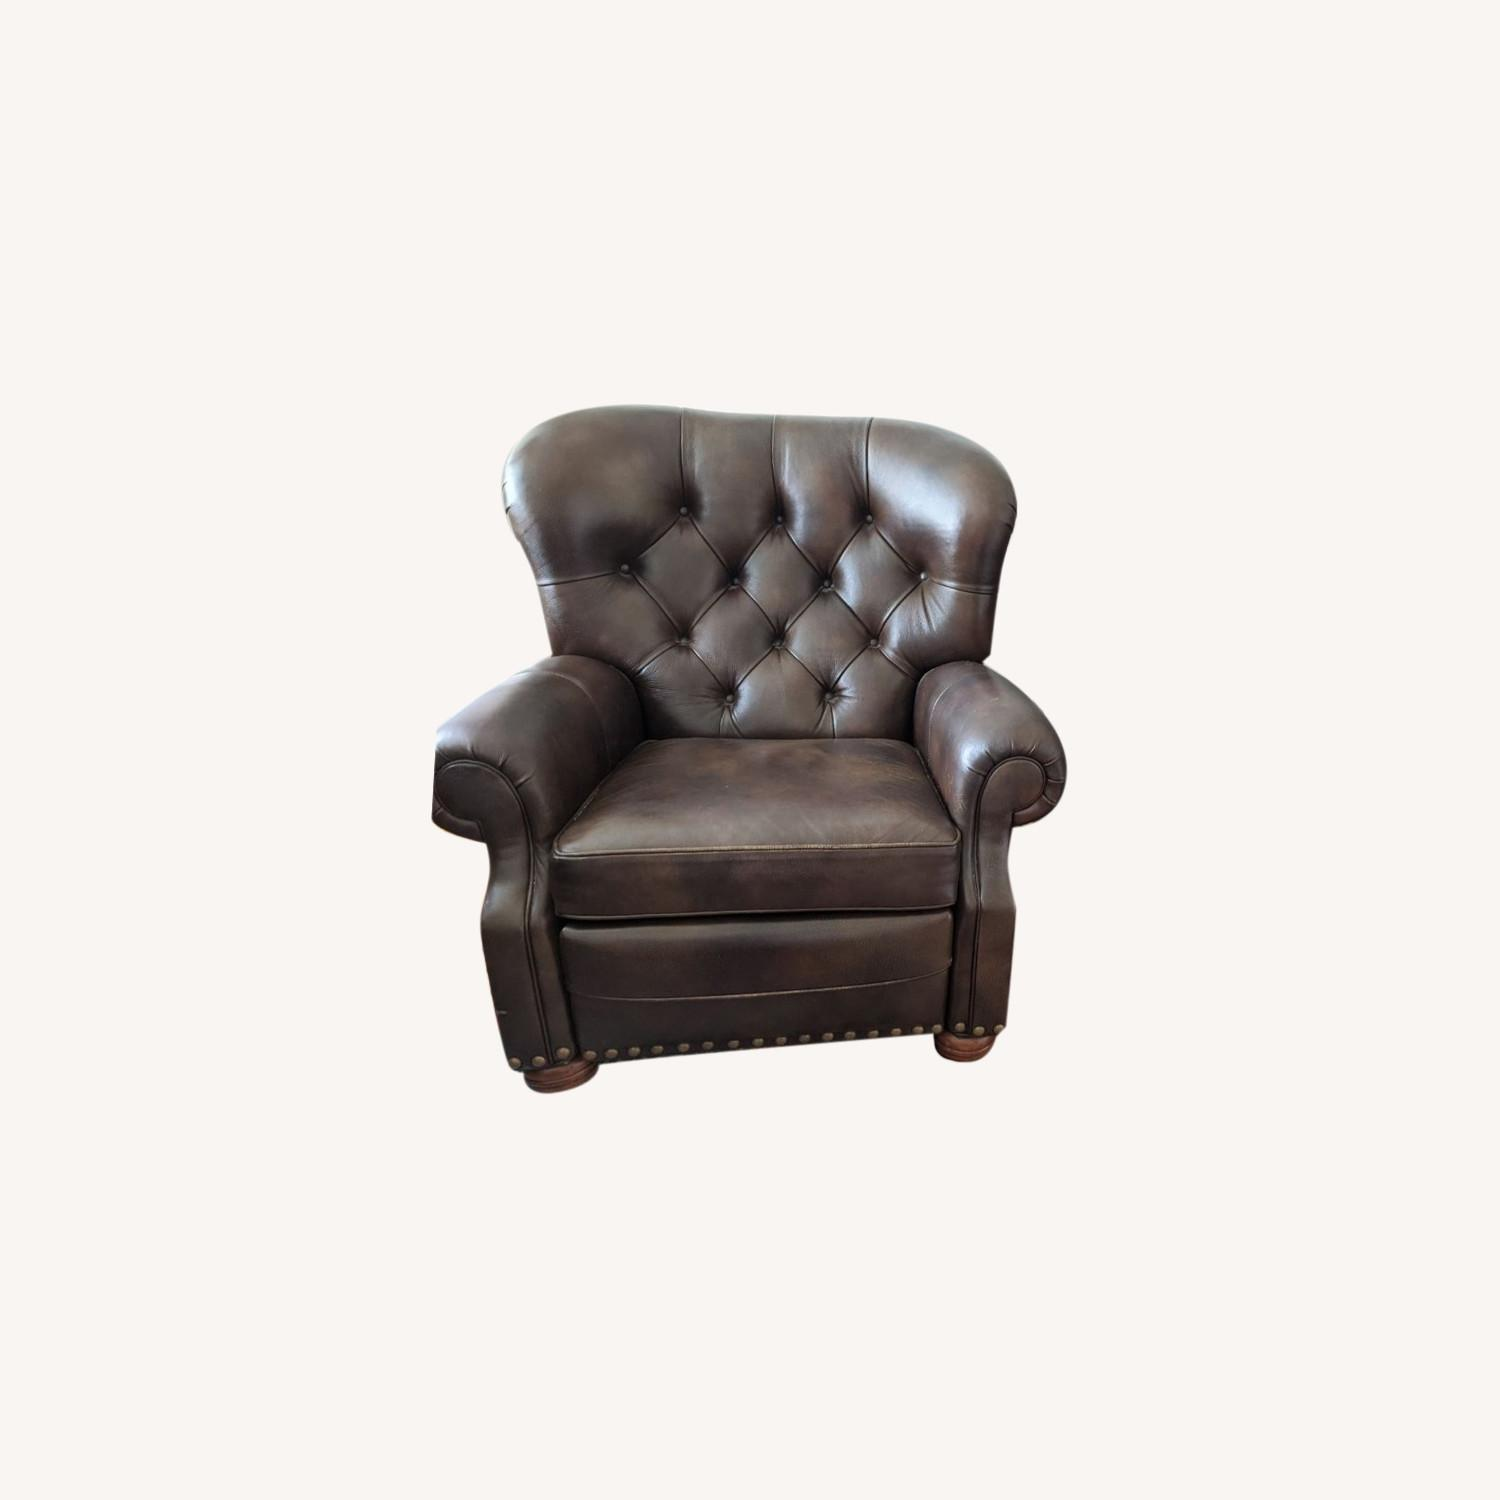 Ethan Allen Leather Recliner Chair (2 avail) - image-0